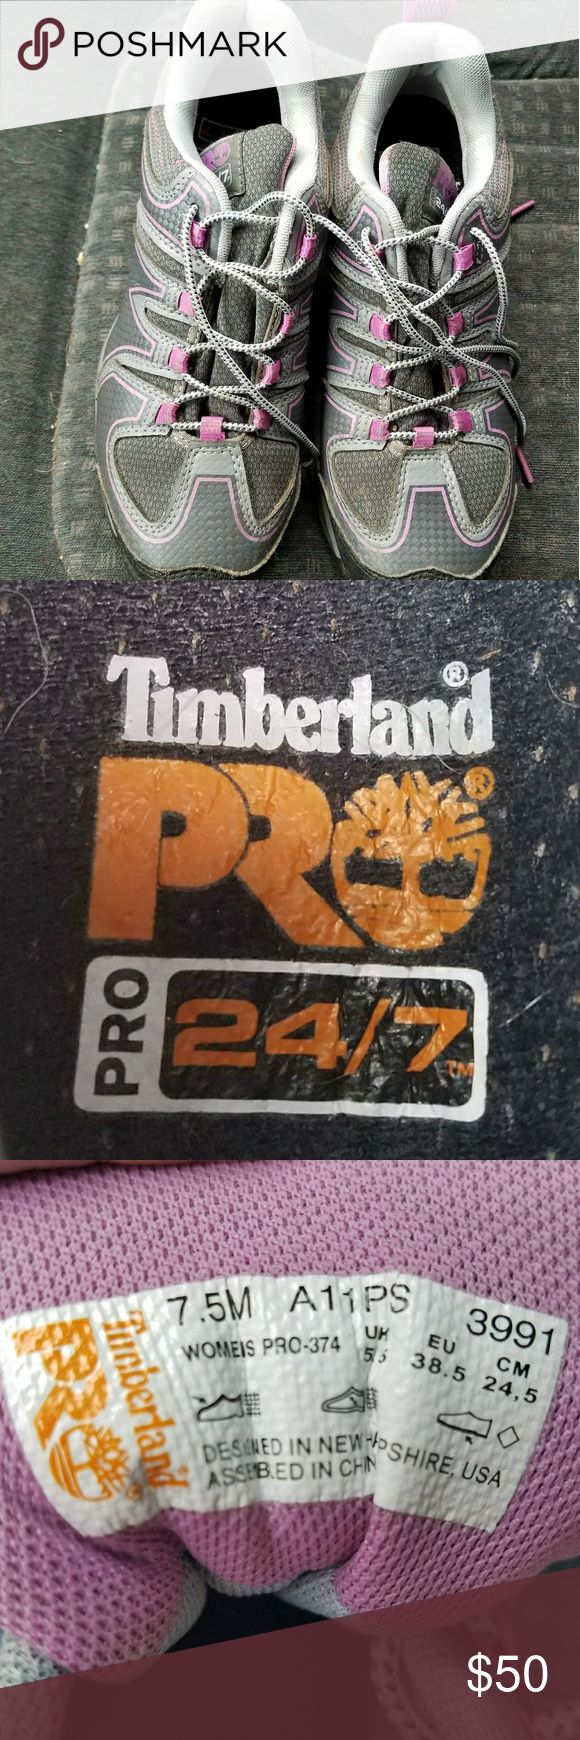 Steel toe shoes Timberland Pro Steeltoe shoes, extremely comfortable, only wore a couple weeks Timberland Shoes Sneakers